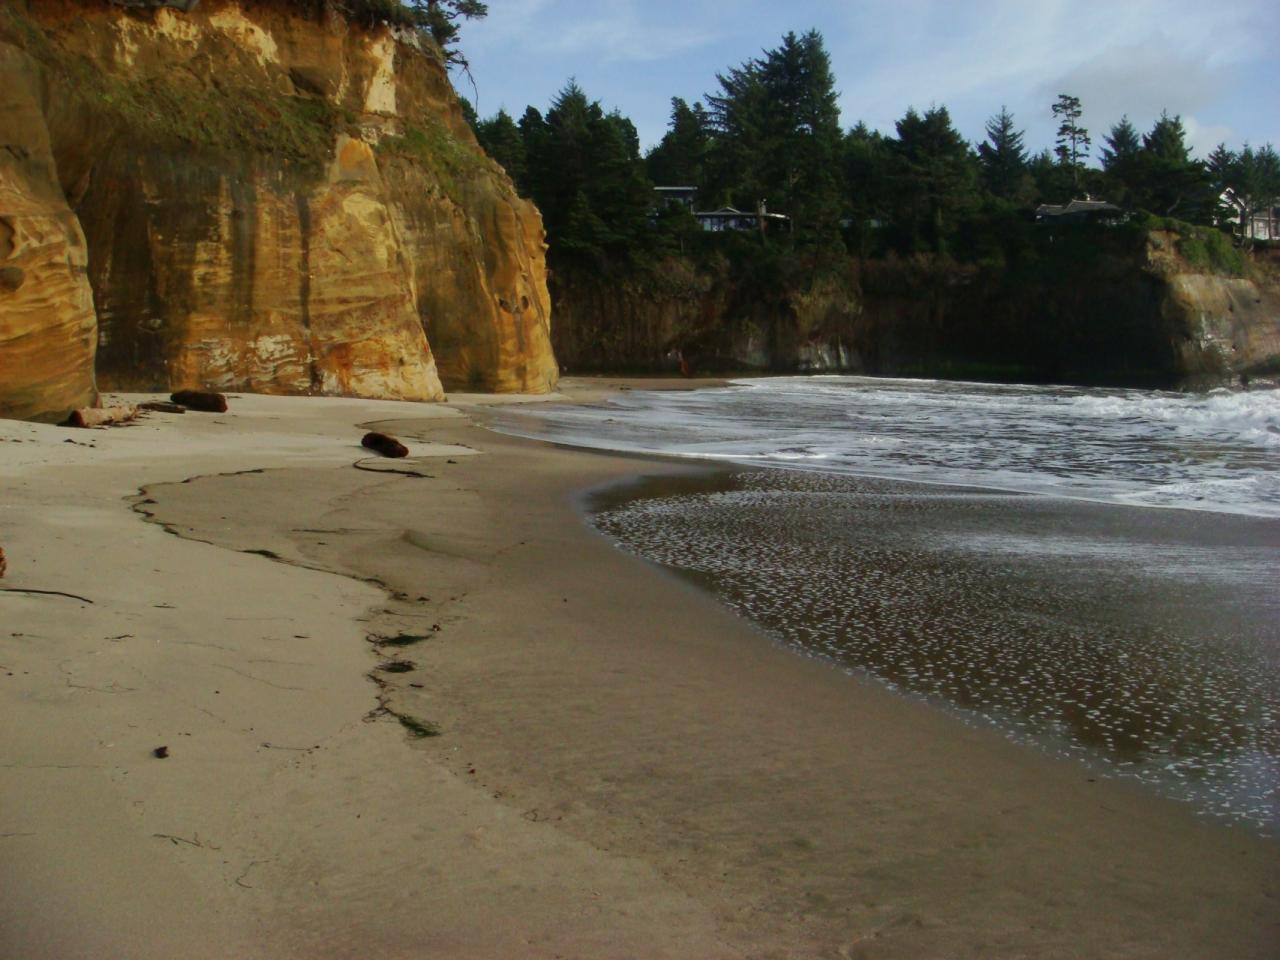 View looking east along north beach of Big Whale Cove